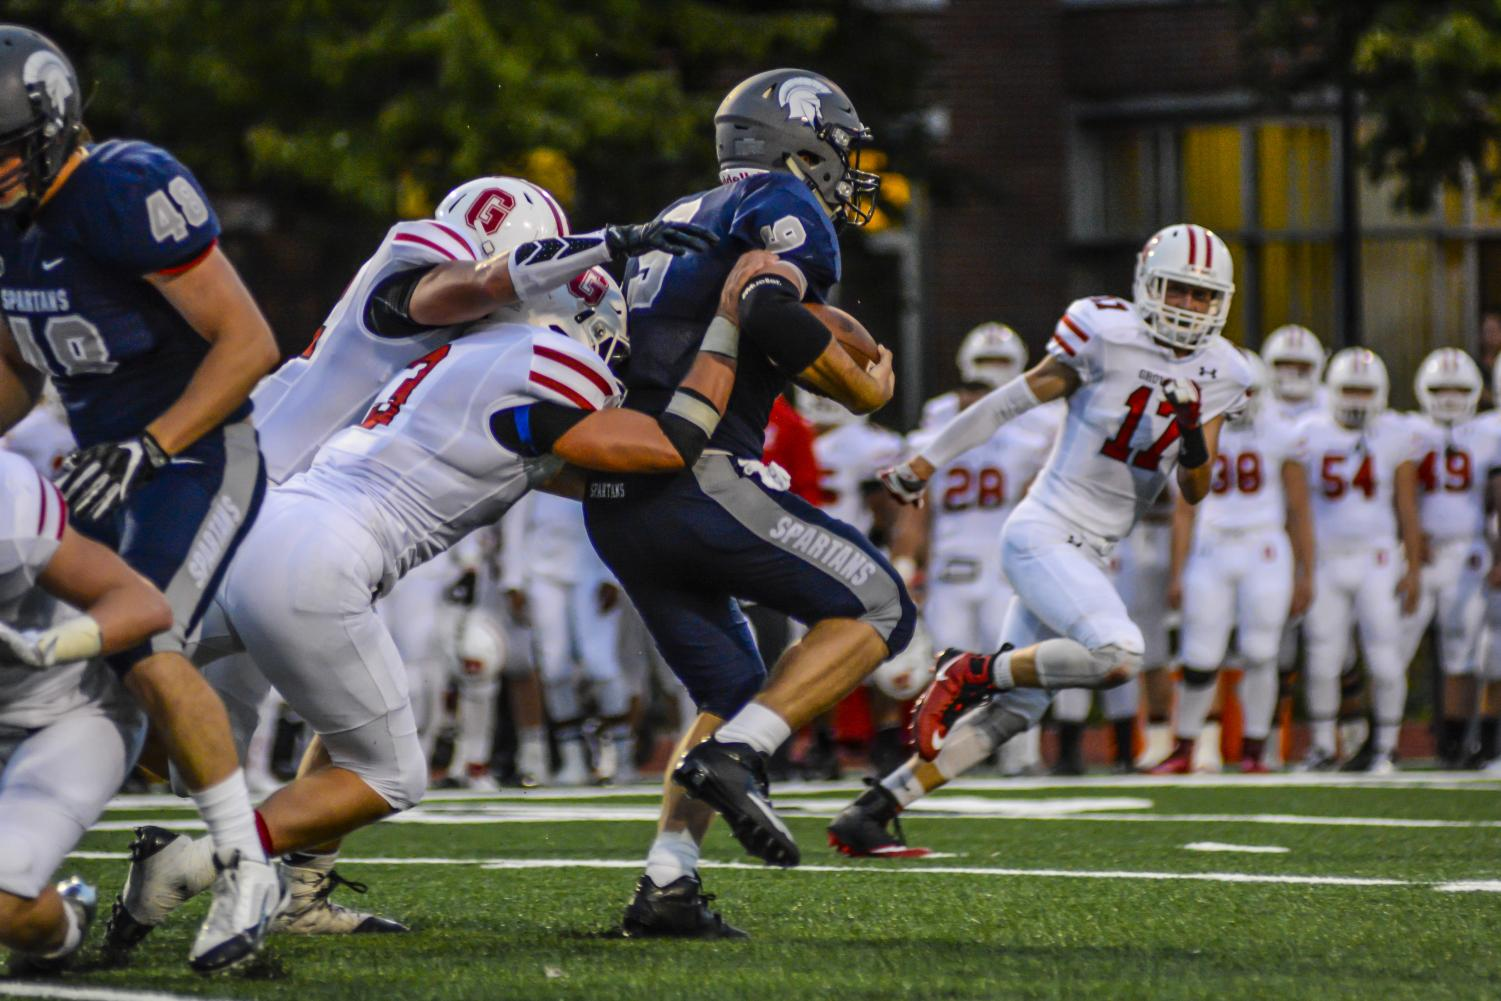 The Spatants football team scored 63 points en route to their sixth straight win.